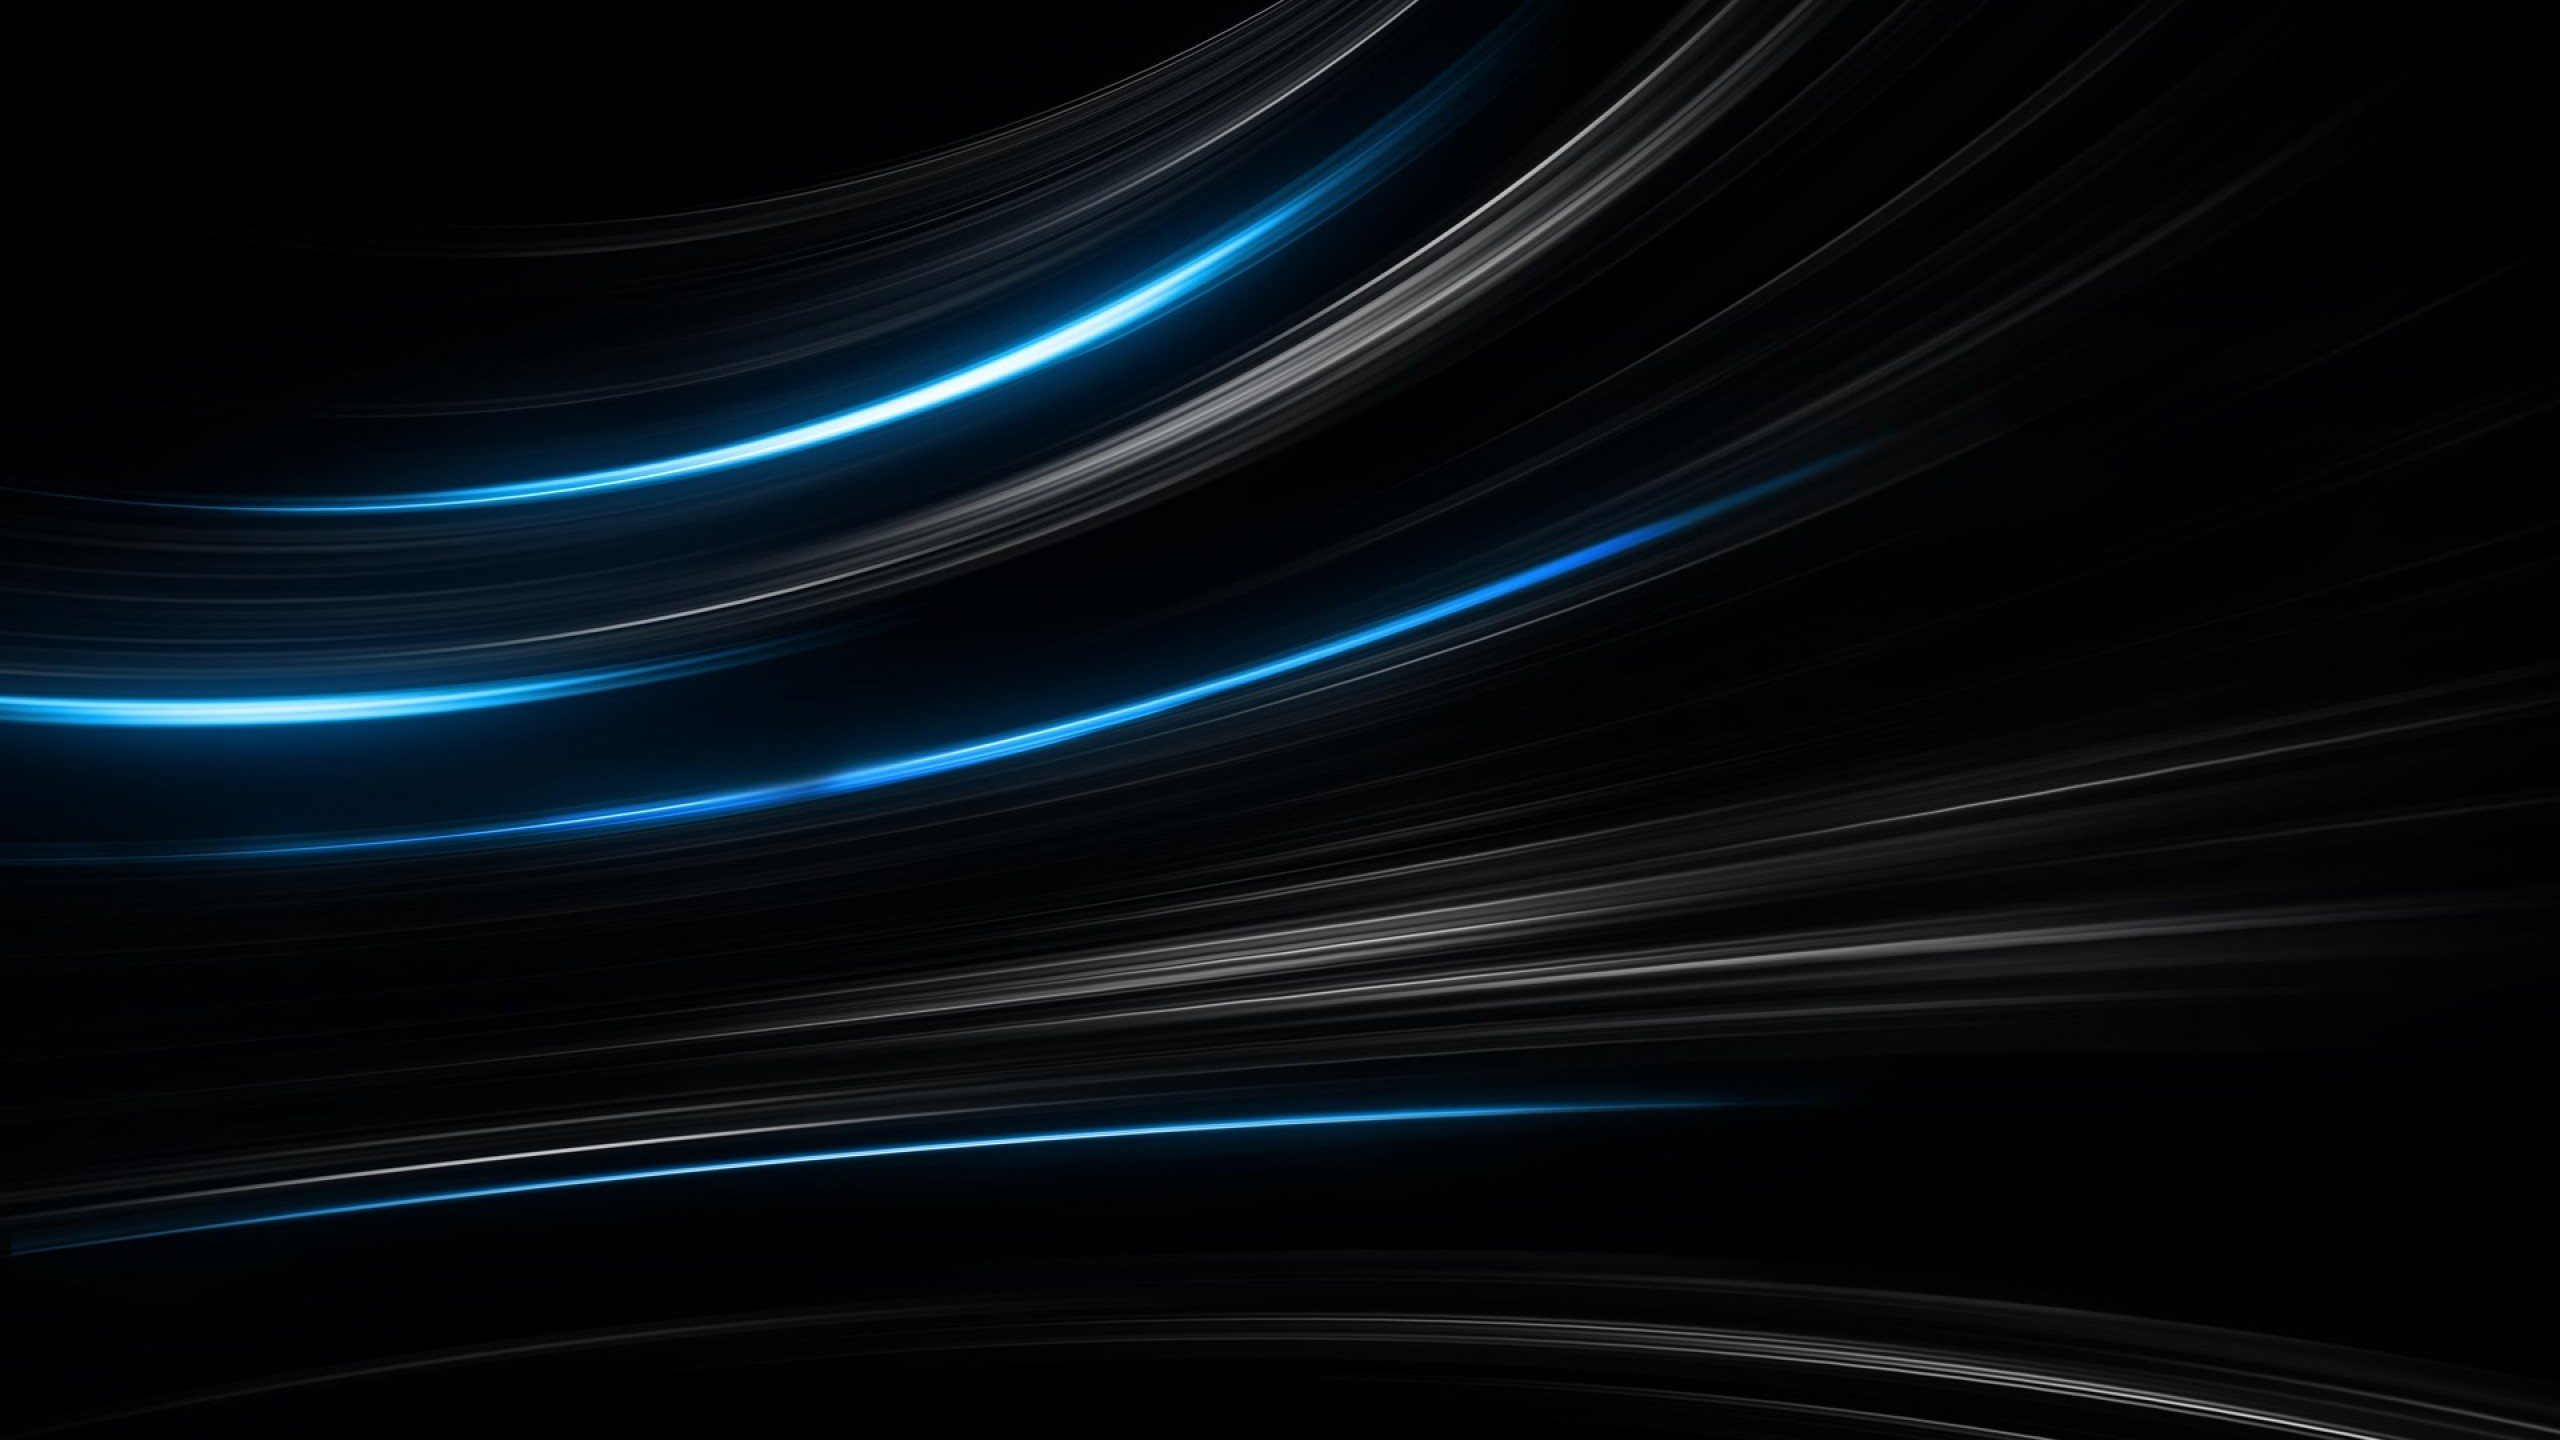 Wallpaper black, blue, abstract, stripes